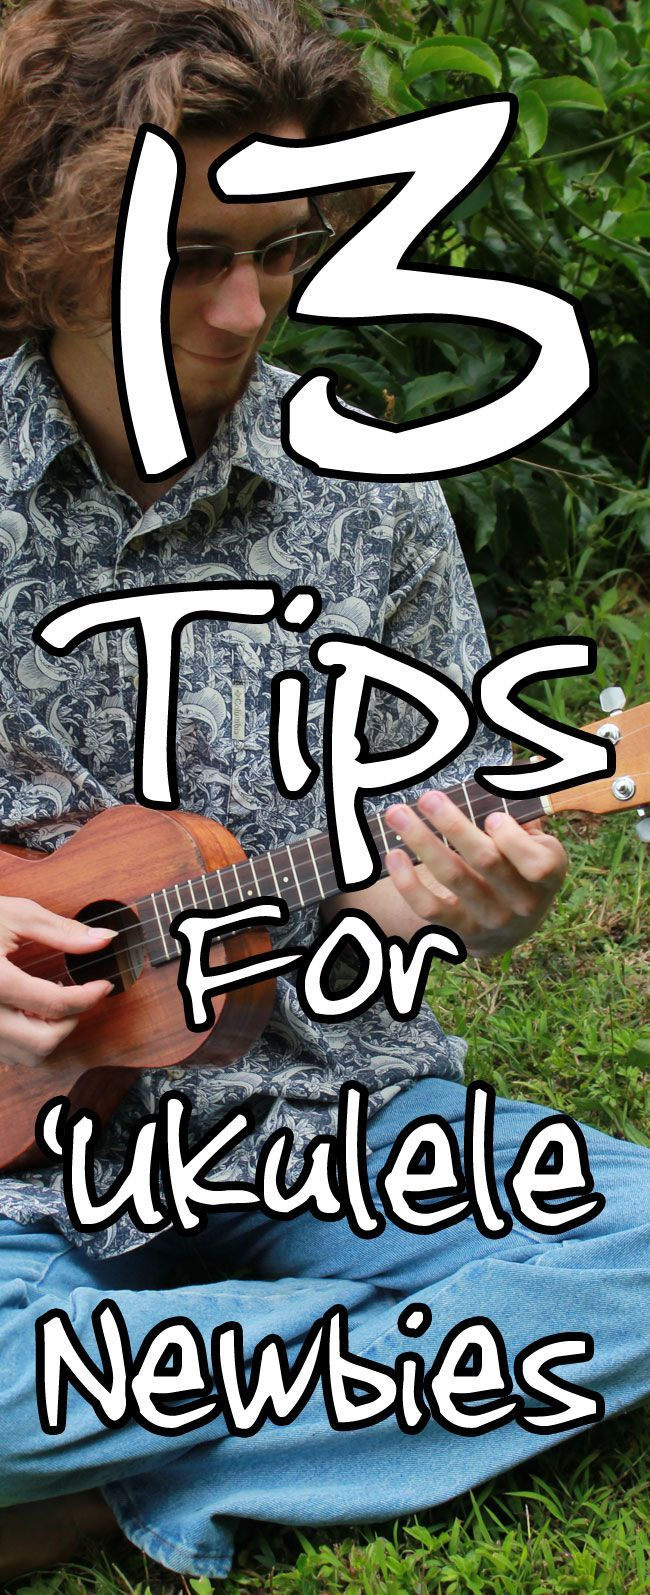 91 best sheet music images on pinterest clarinets cool stuff learn how to play ukulele for beginners this collection of beginner ukulele lessons will get you started strumming changing chords and playing songs hexwebz Gallery